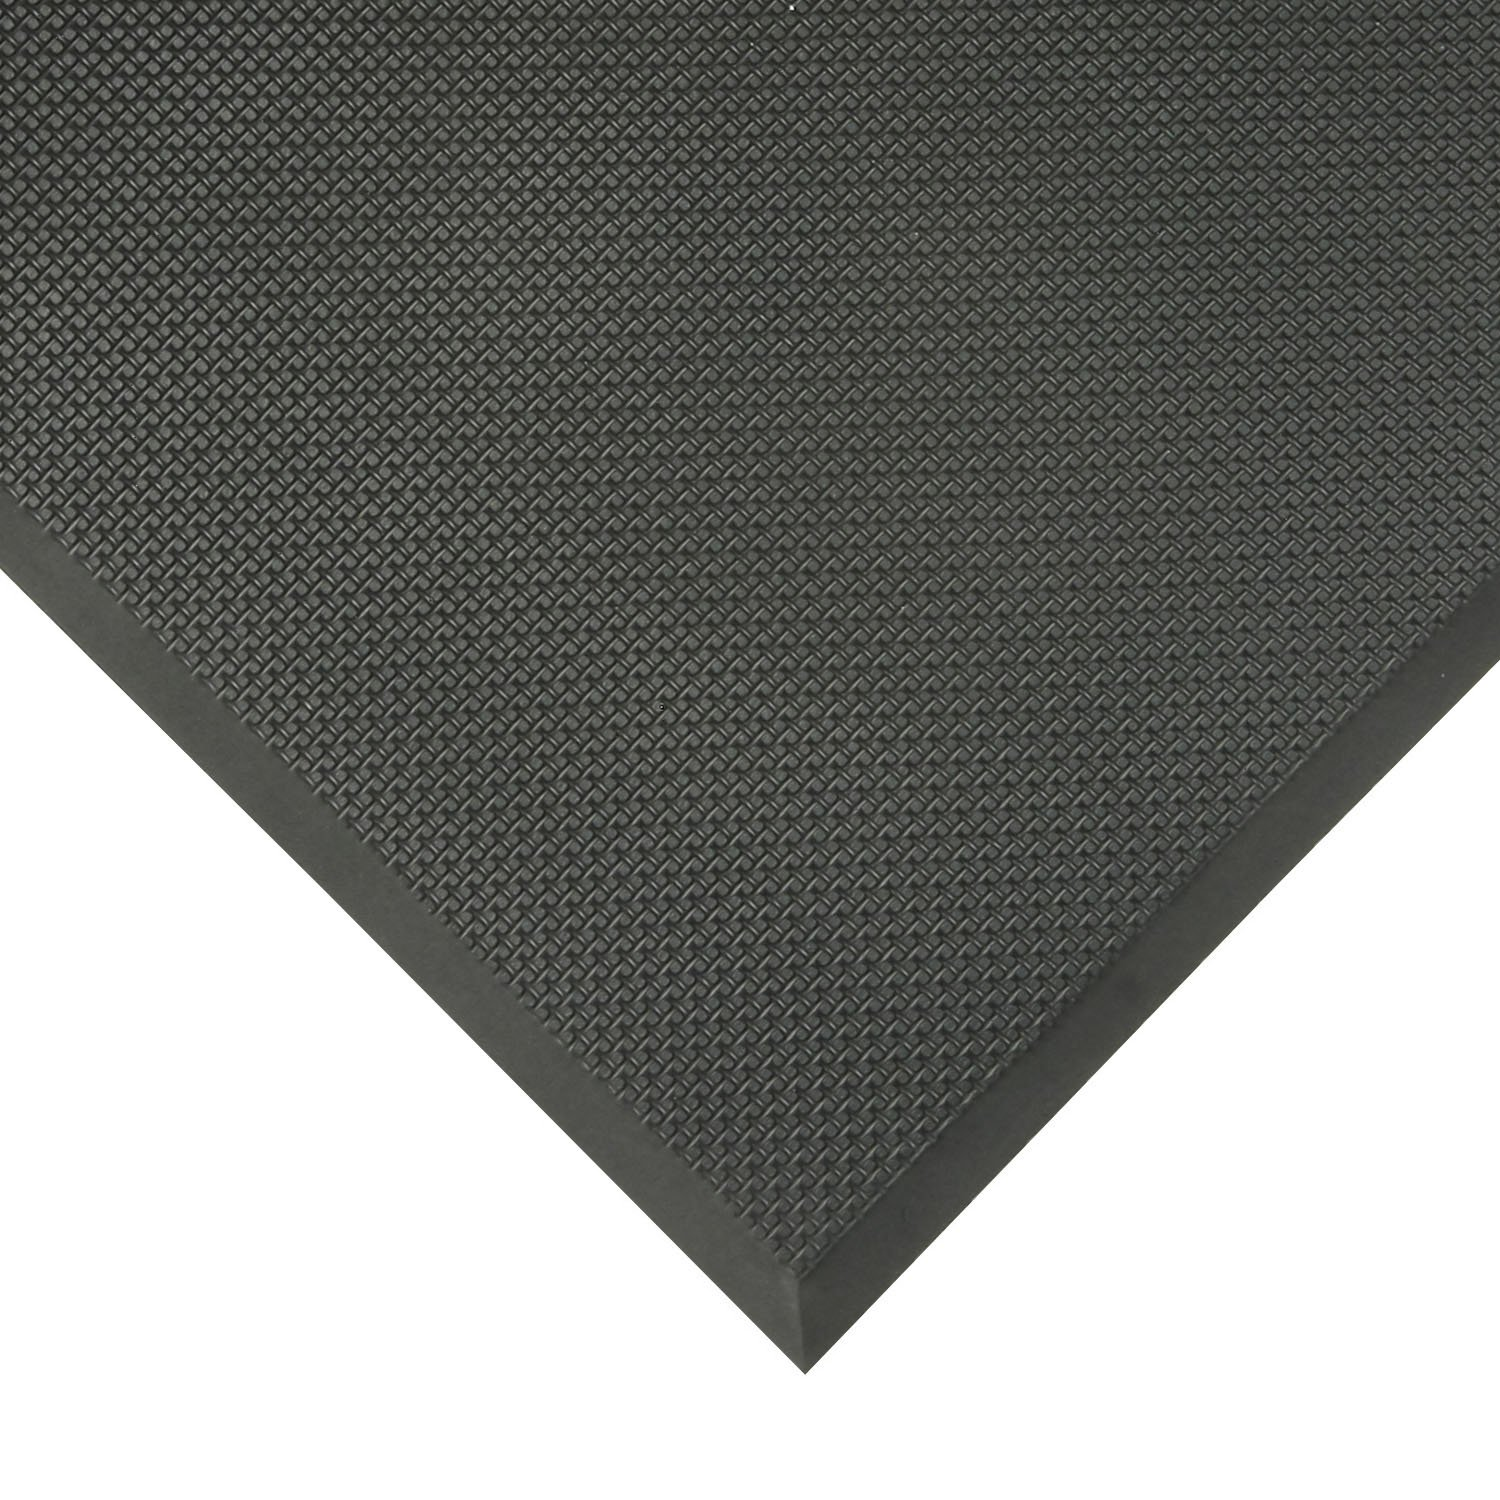 NoTrax T17 Superfoam Safety/Anti-Fatigue Floor Mat, for Dry Areas, 3' Width x 5' Length x 5/8'' Thickness, Black